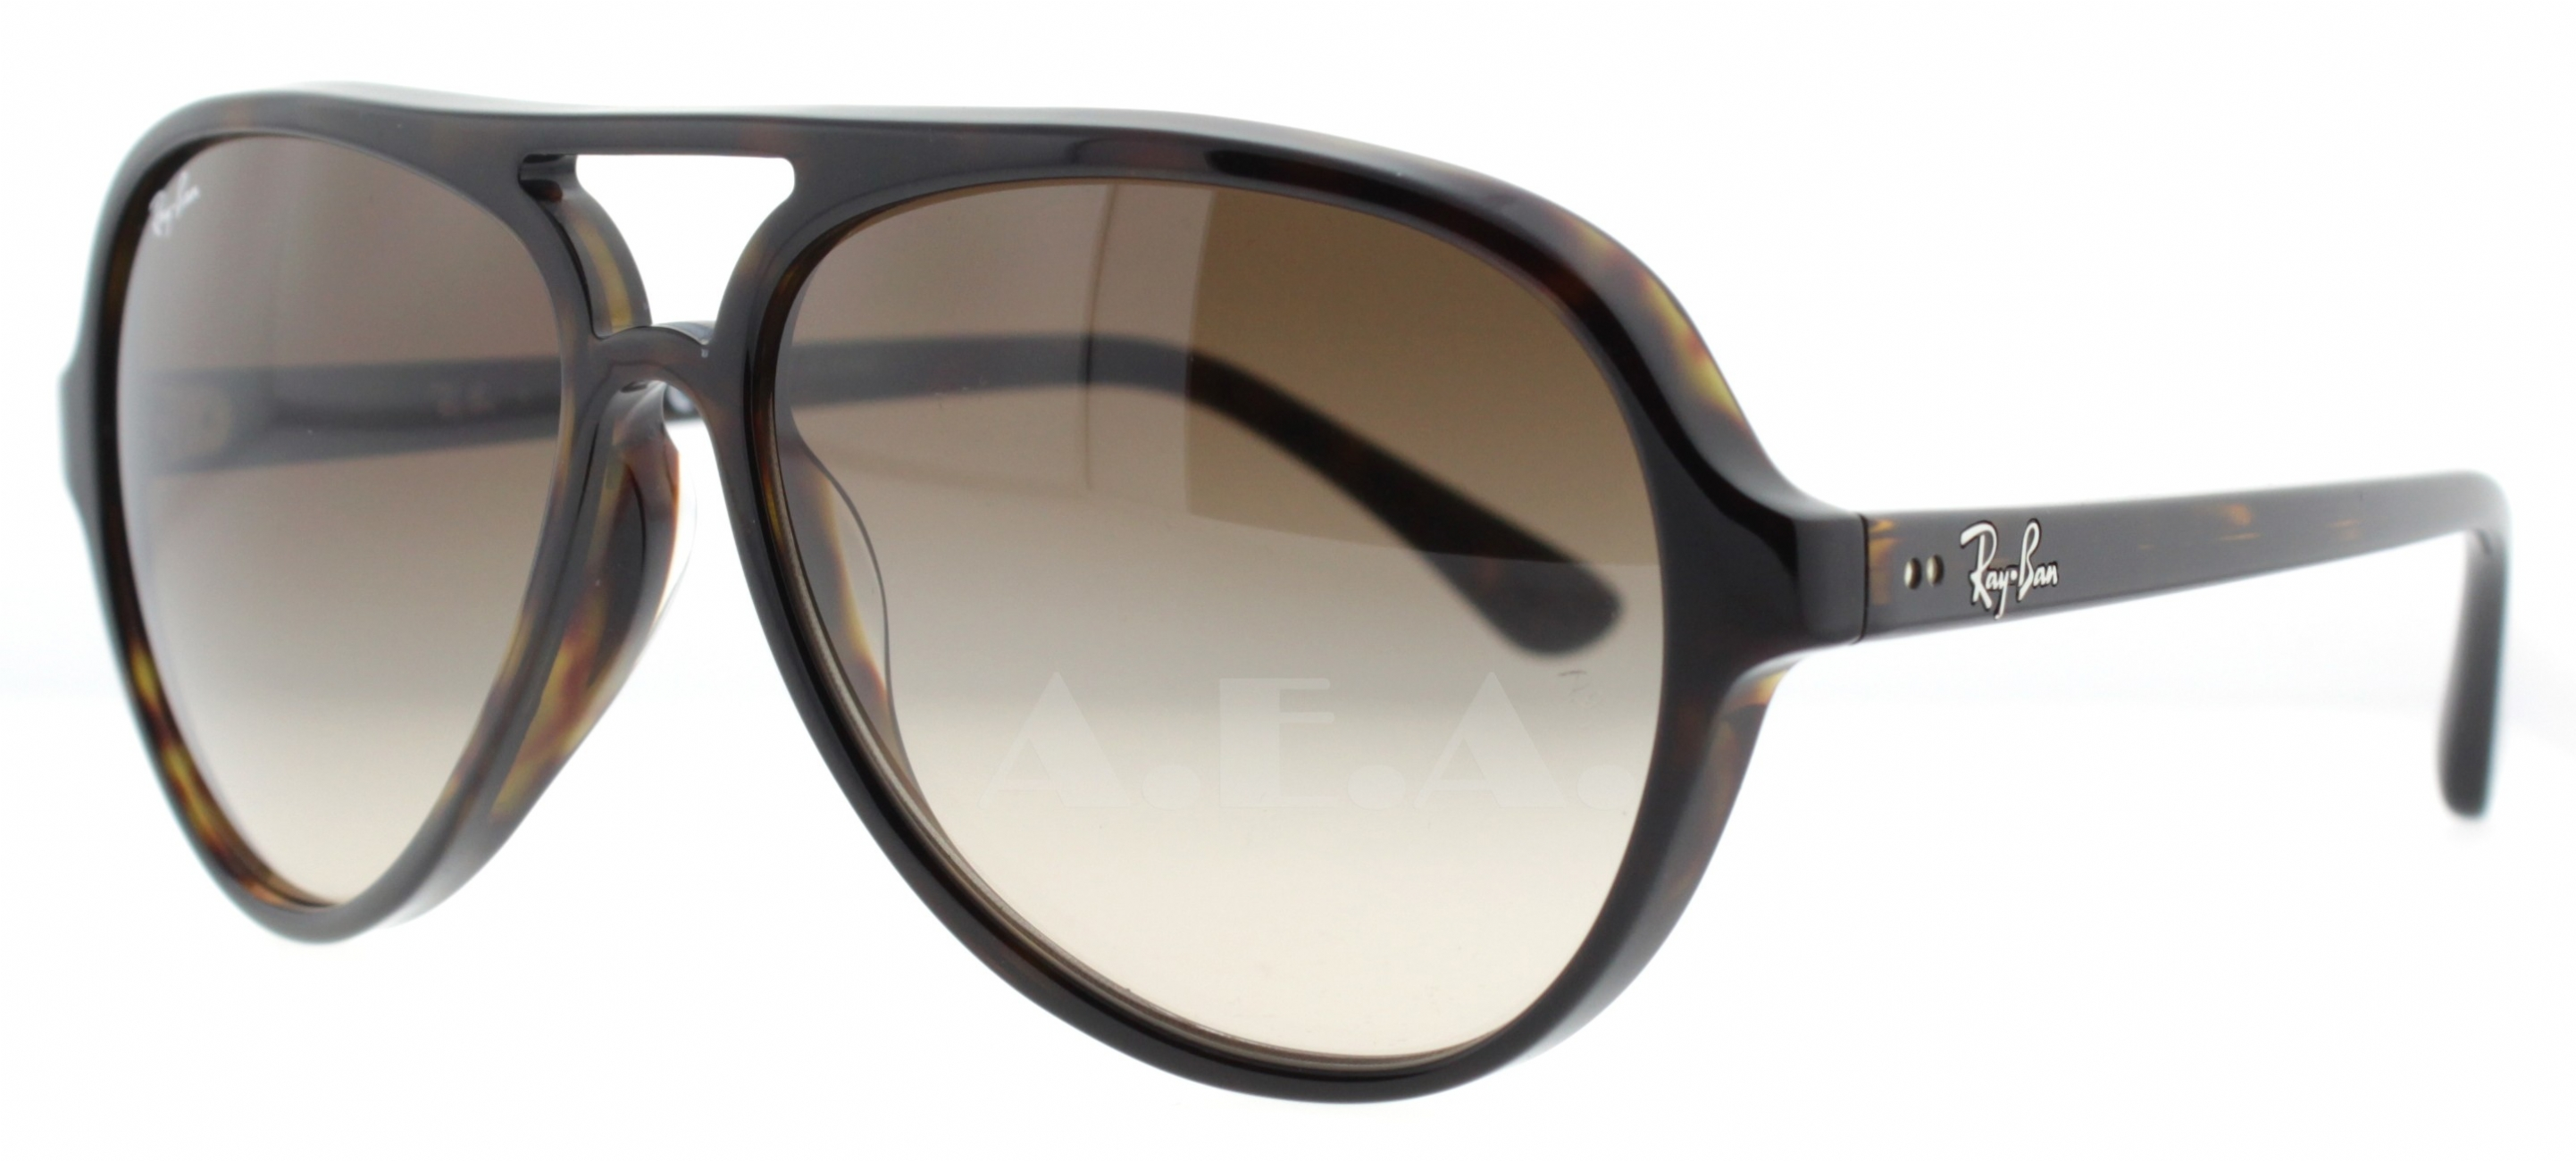 RAY BAN 4125 in color 90213